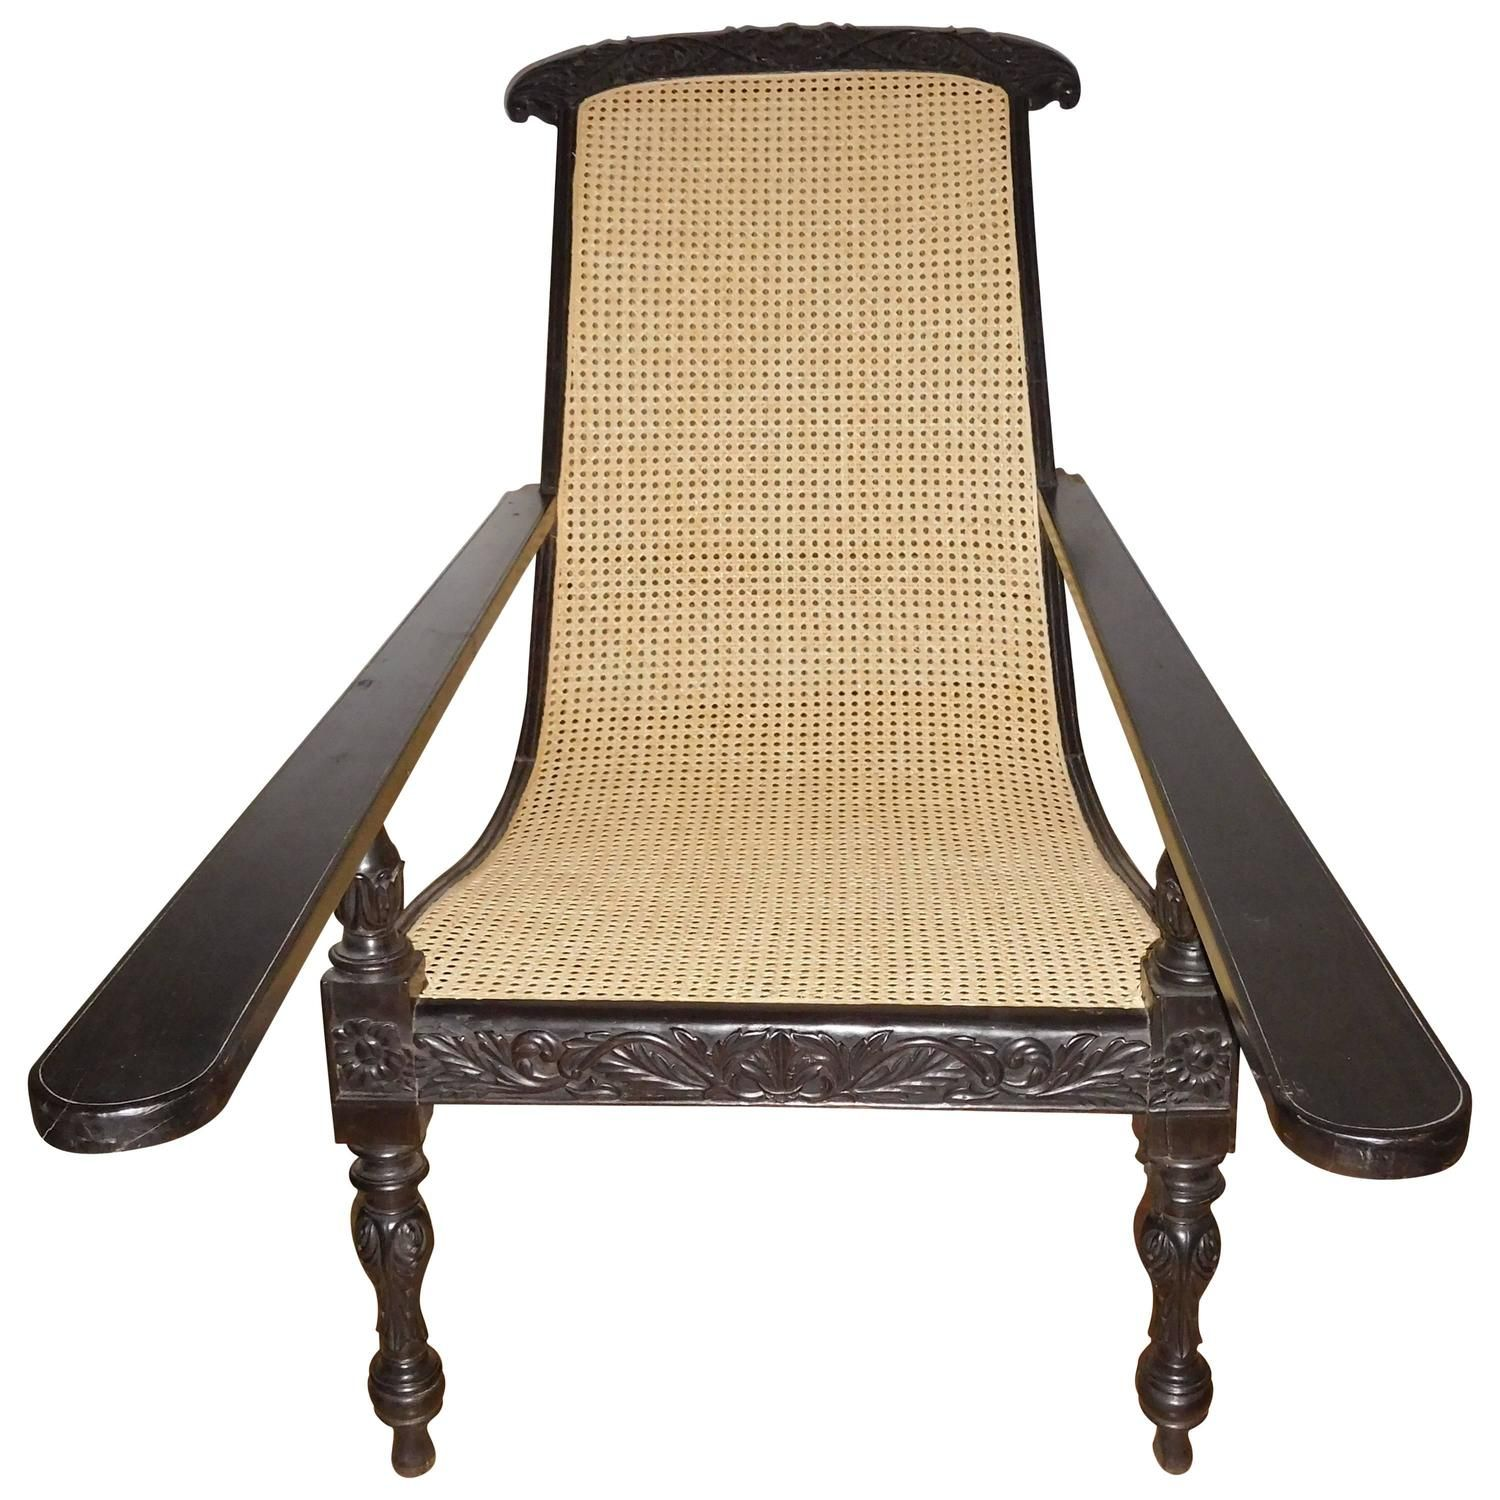 Rare Ebony Wood Late 19th Century Plantation Chair, Anglo-Indian - Rare Ebony Wood Late 19th Century Plantation Chair, Anglo-Indian